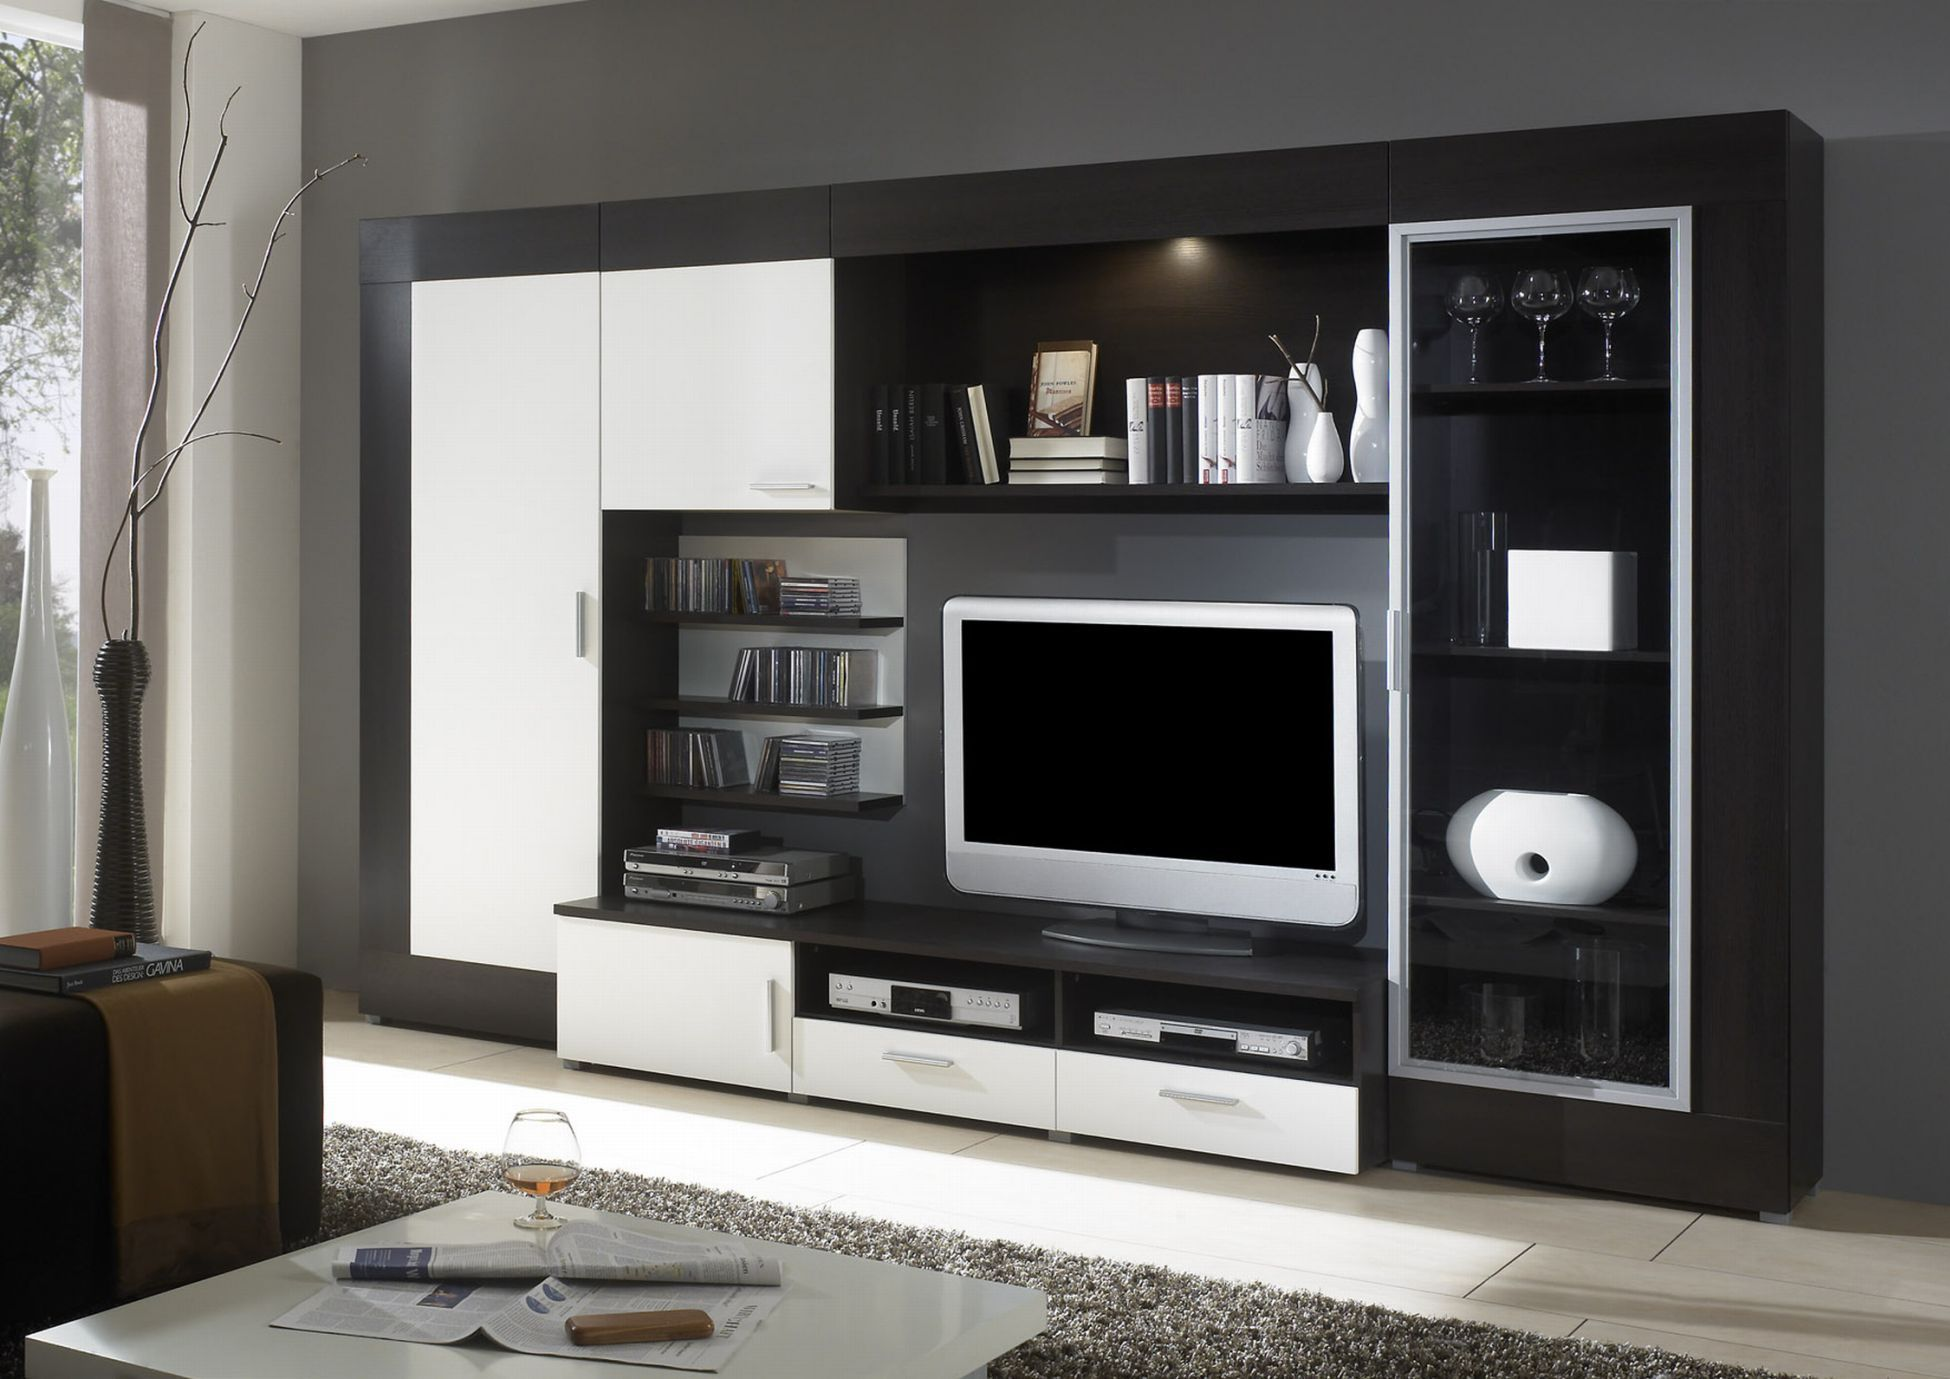 marvelous modern wall cabinets designs inspiration for your ideas  - marvelous modern wall cabinets designs inspiration for your ideas interiorbeautiful white tv wall unit in clean and natty room nuance exclusive an…